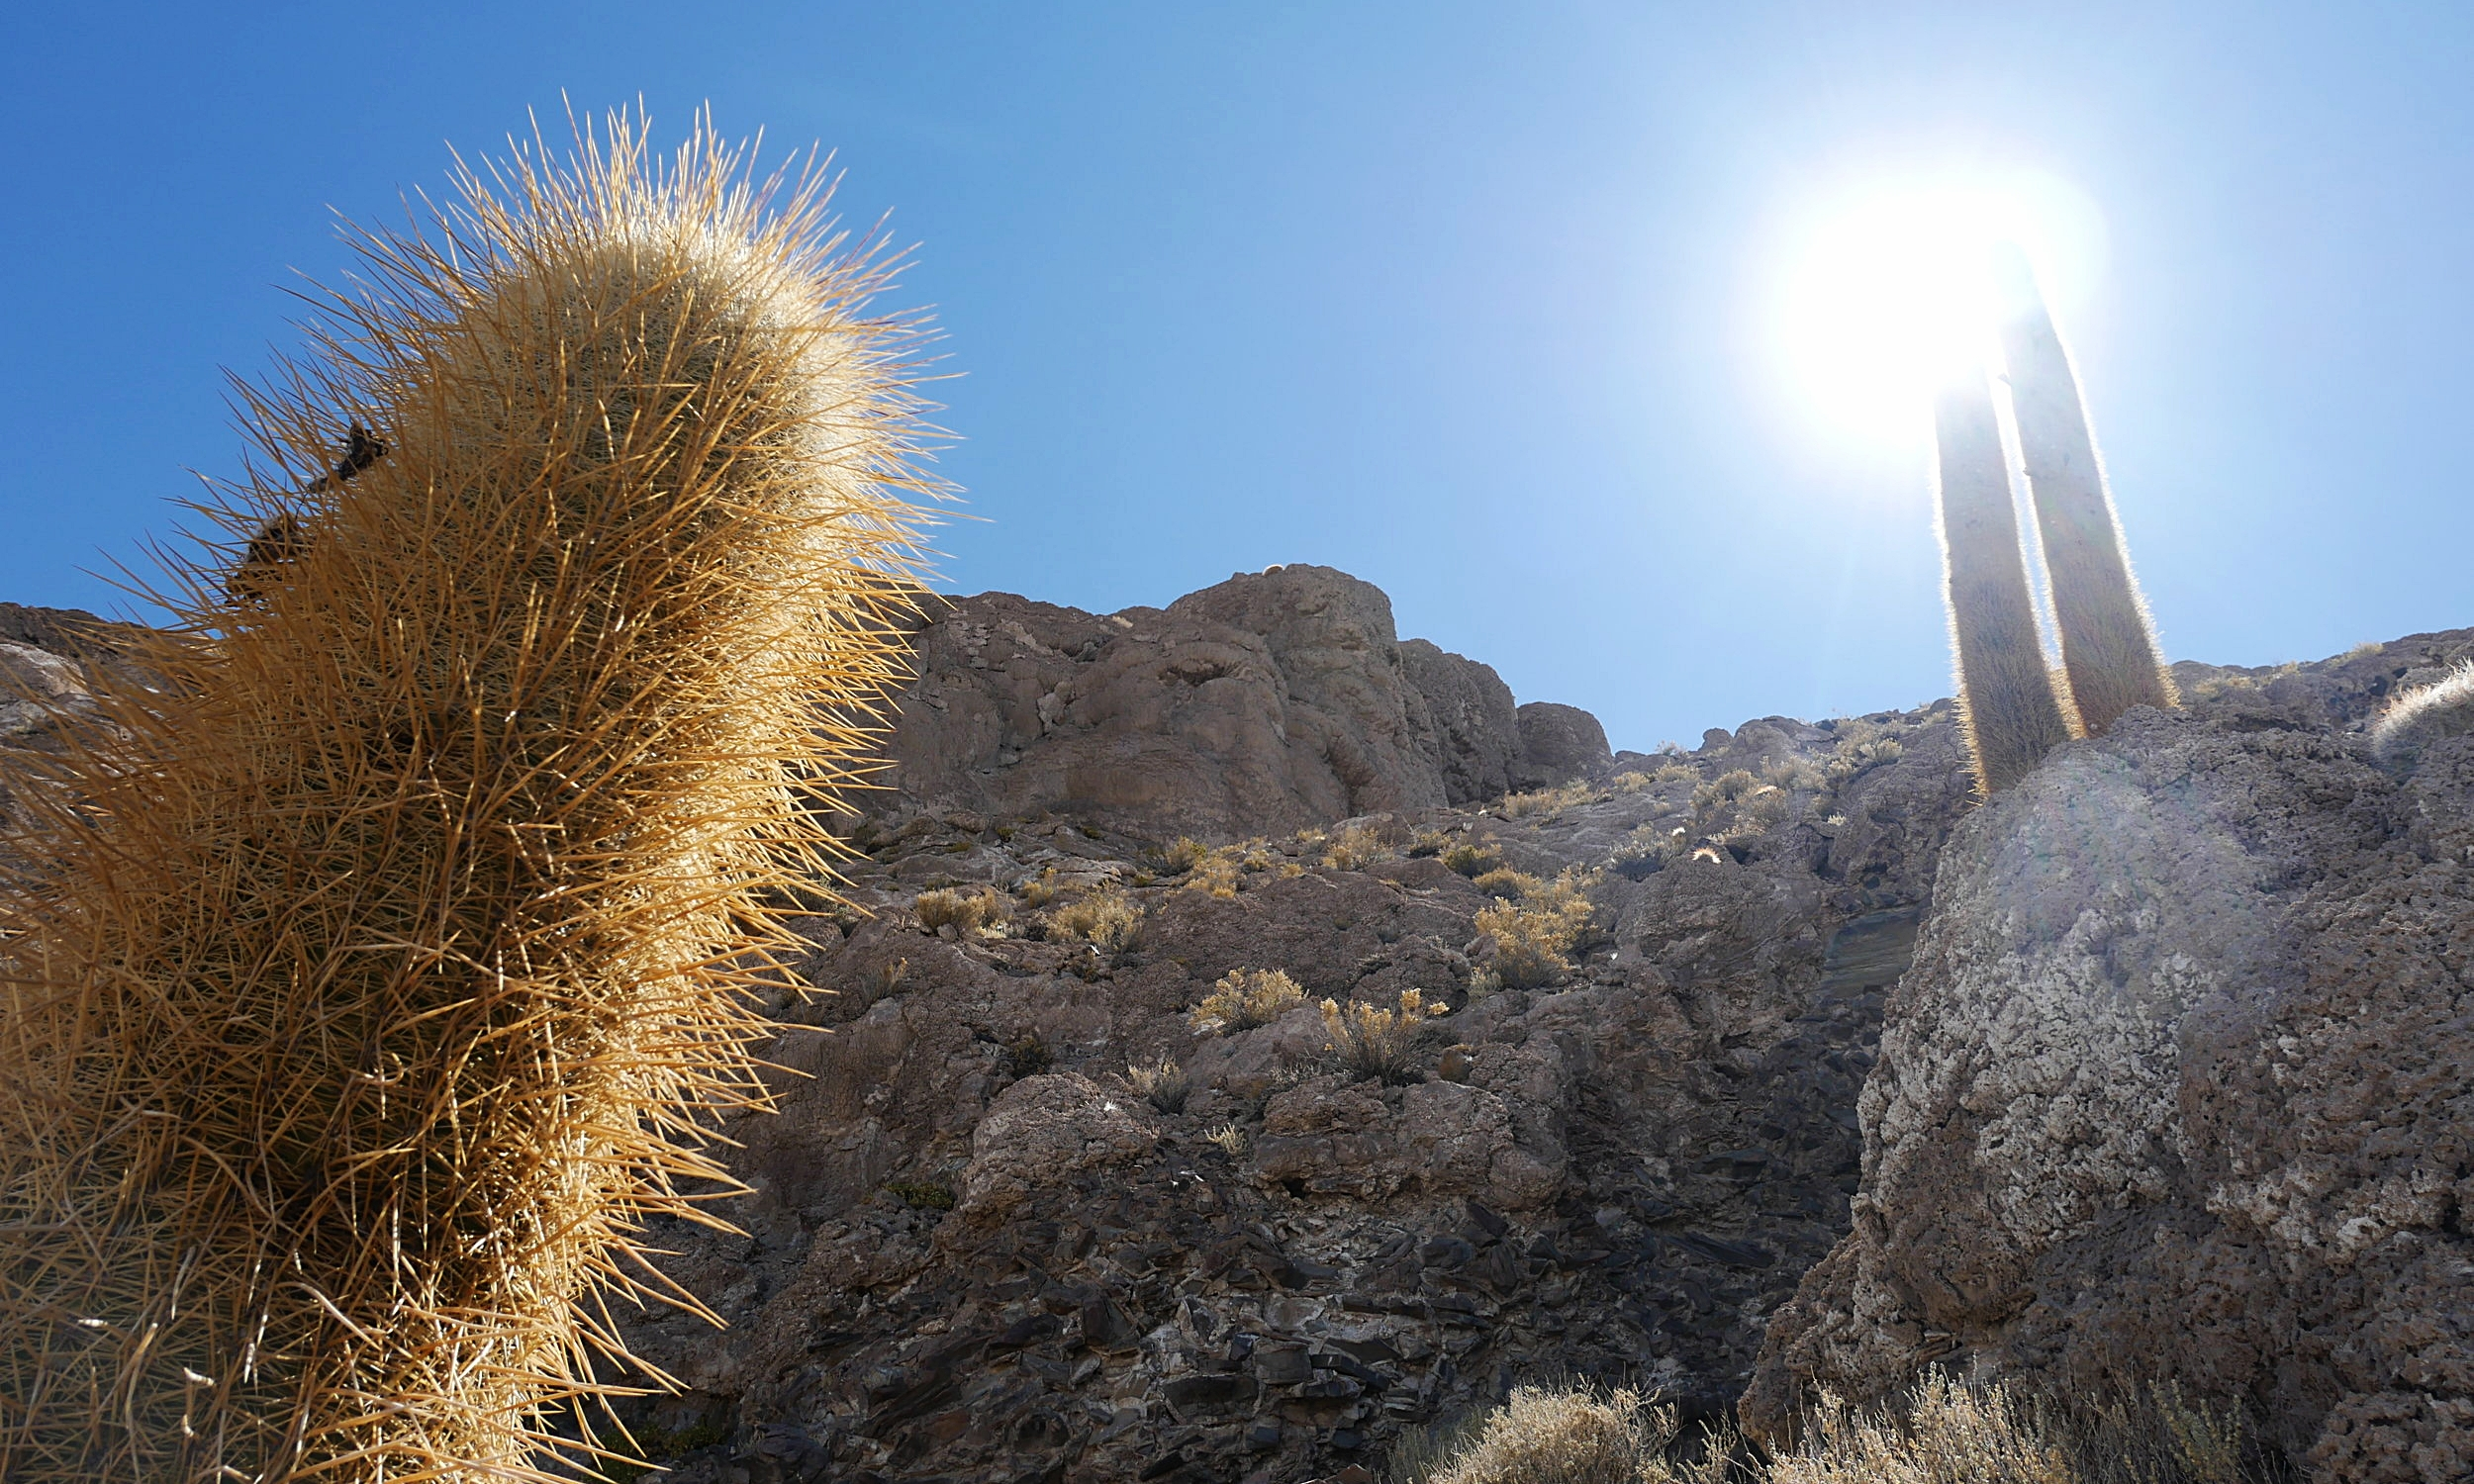 The sunlight catching the cacti